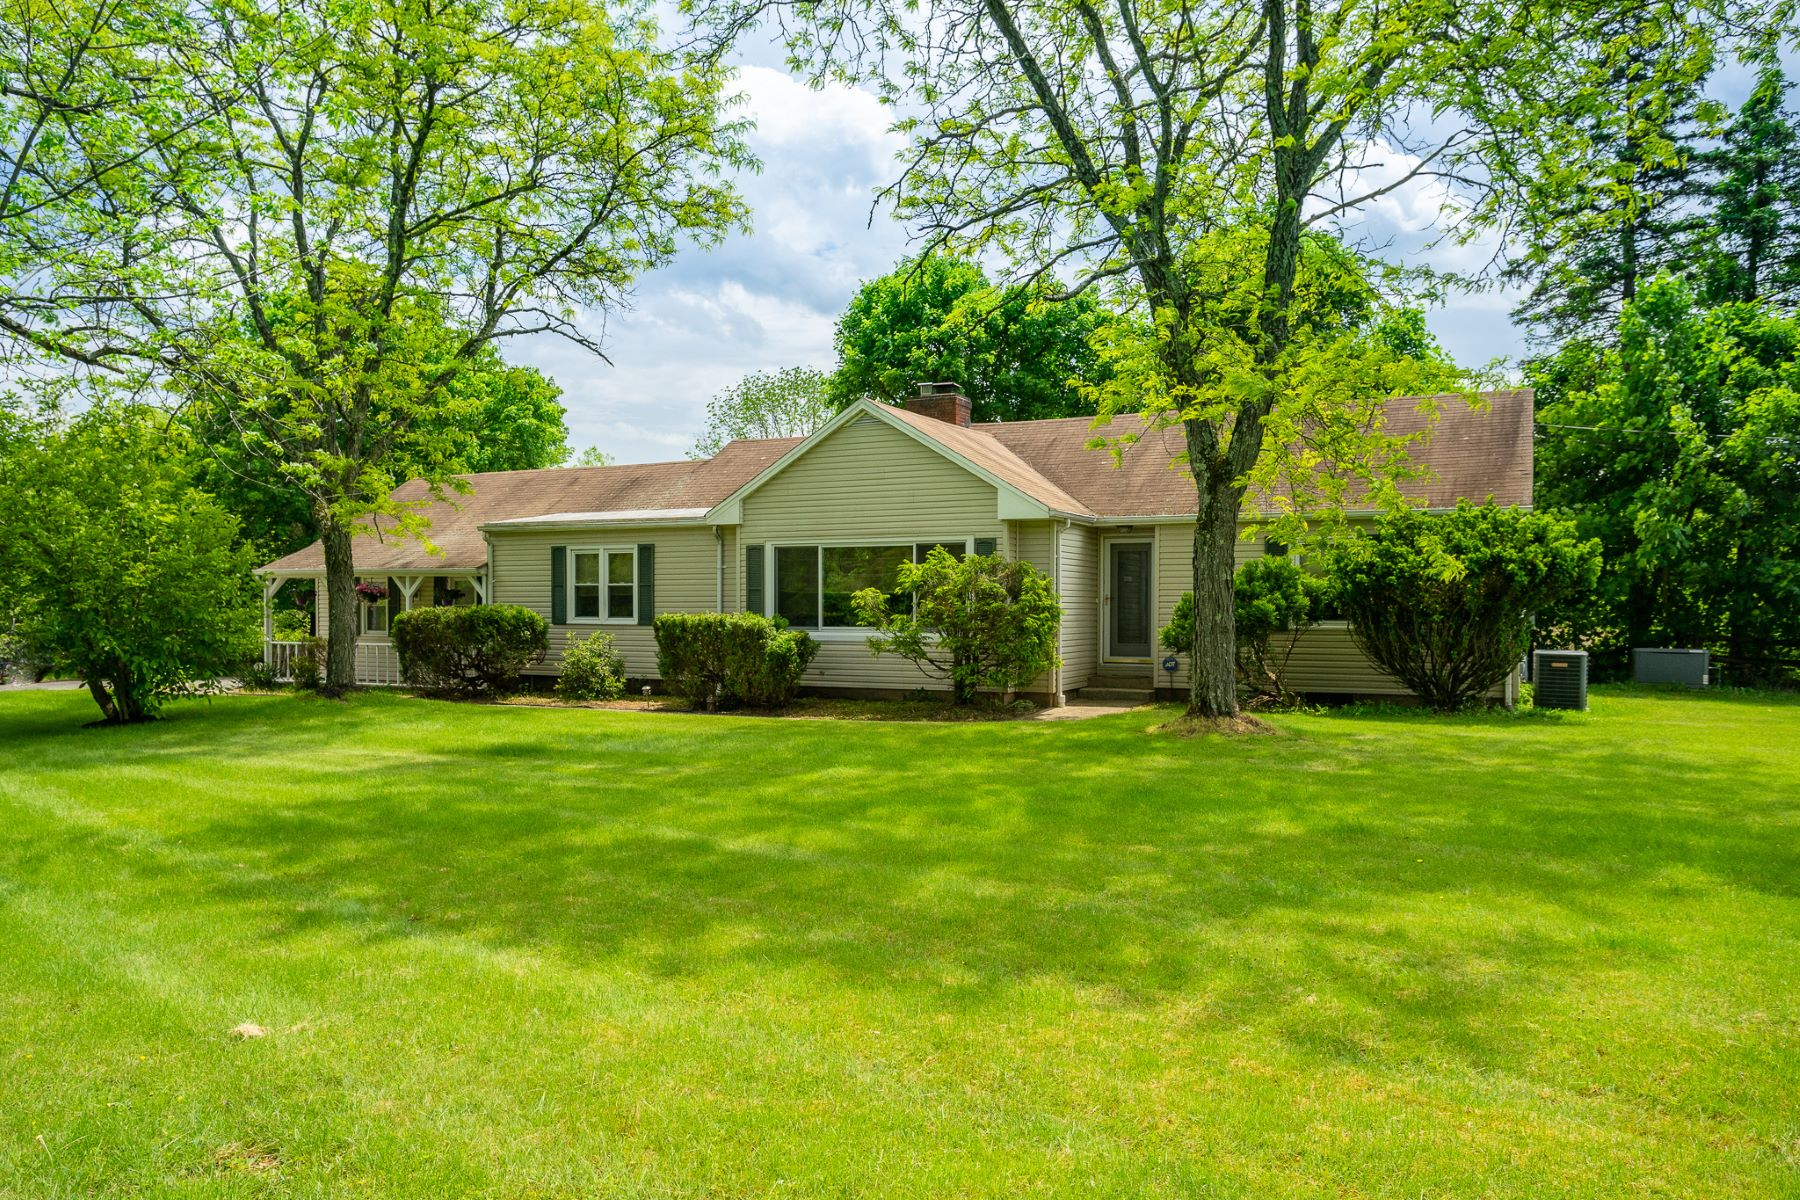 Single Family Homes for Sale at Wonderful Ranch 17 Meadow Road Readington Township, New Jersey 08889 United States